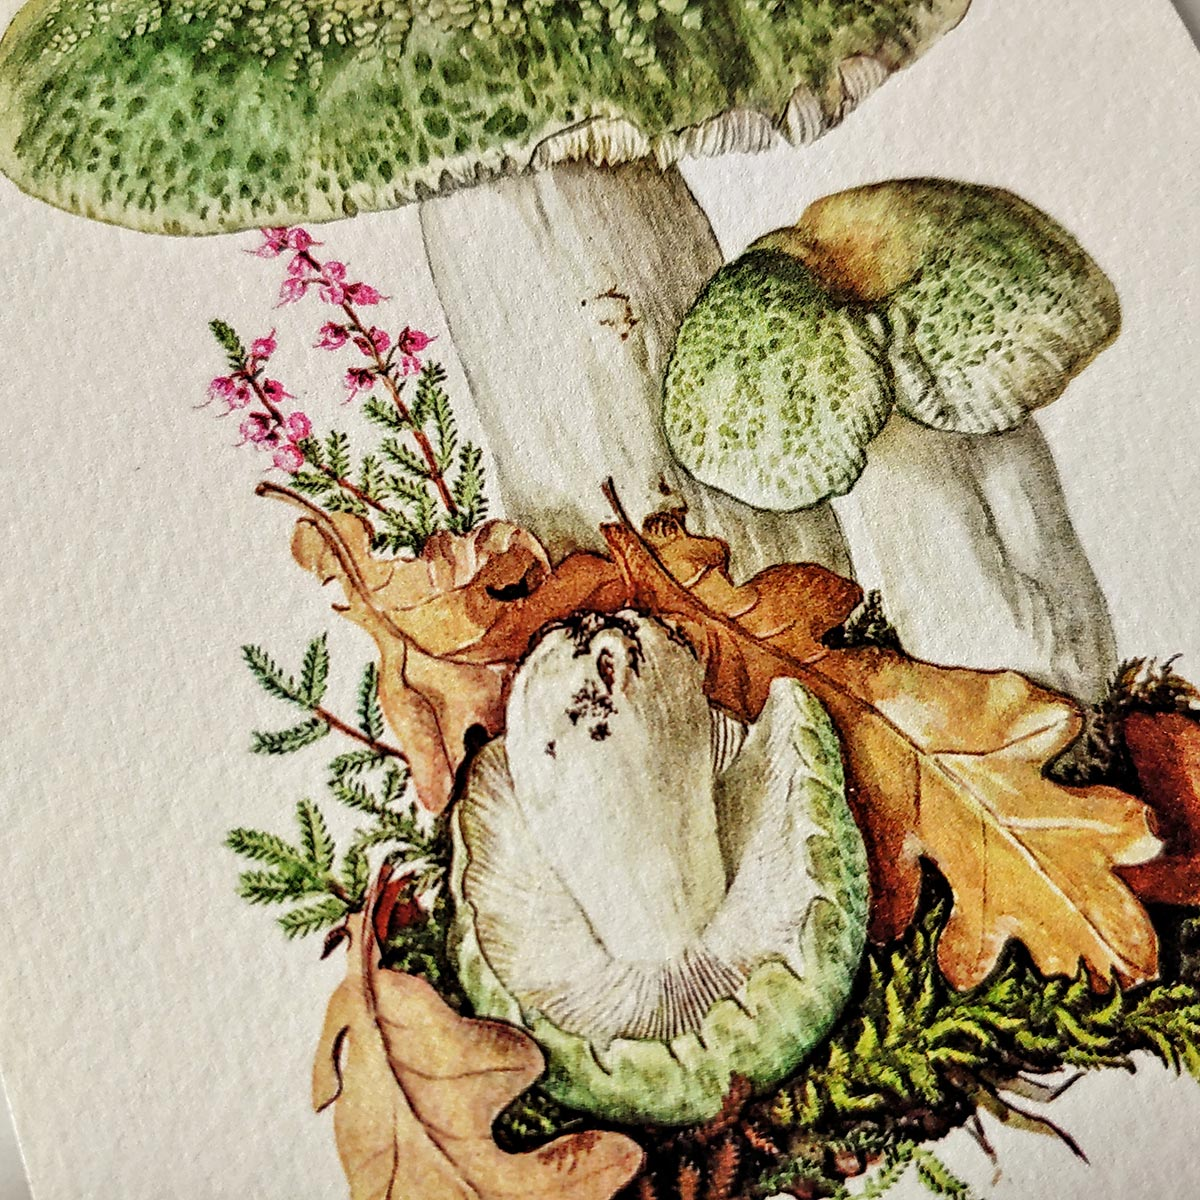 Showing fine detail of the printed green mushroom on watercolor paper